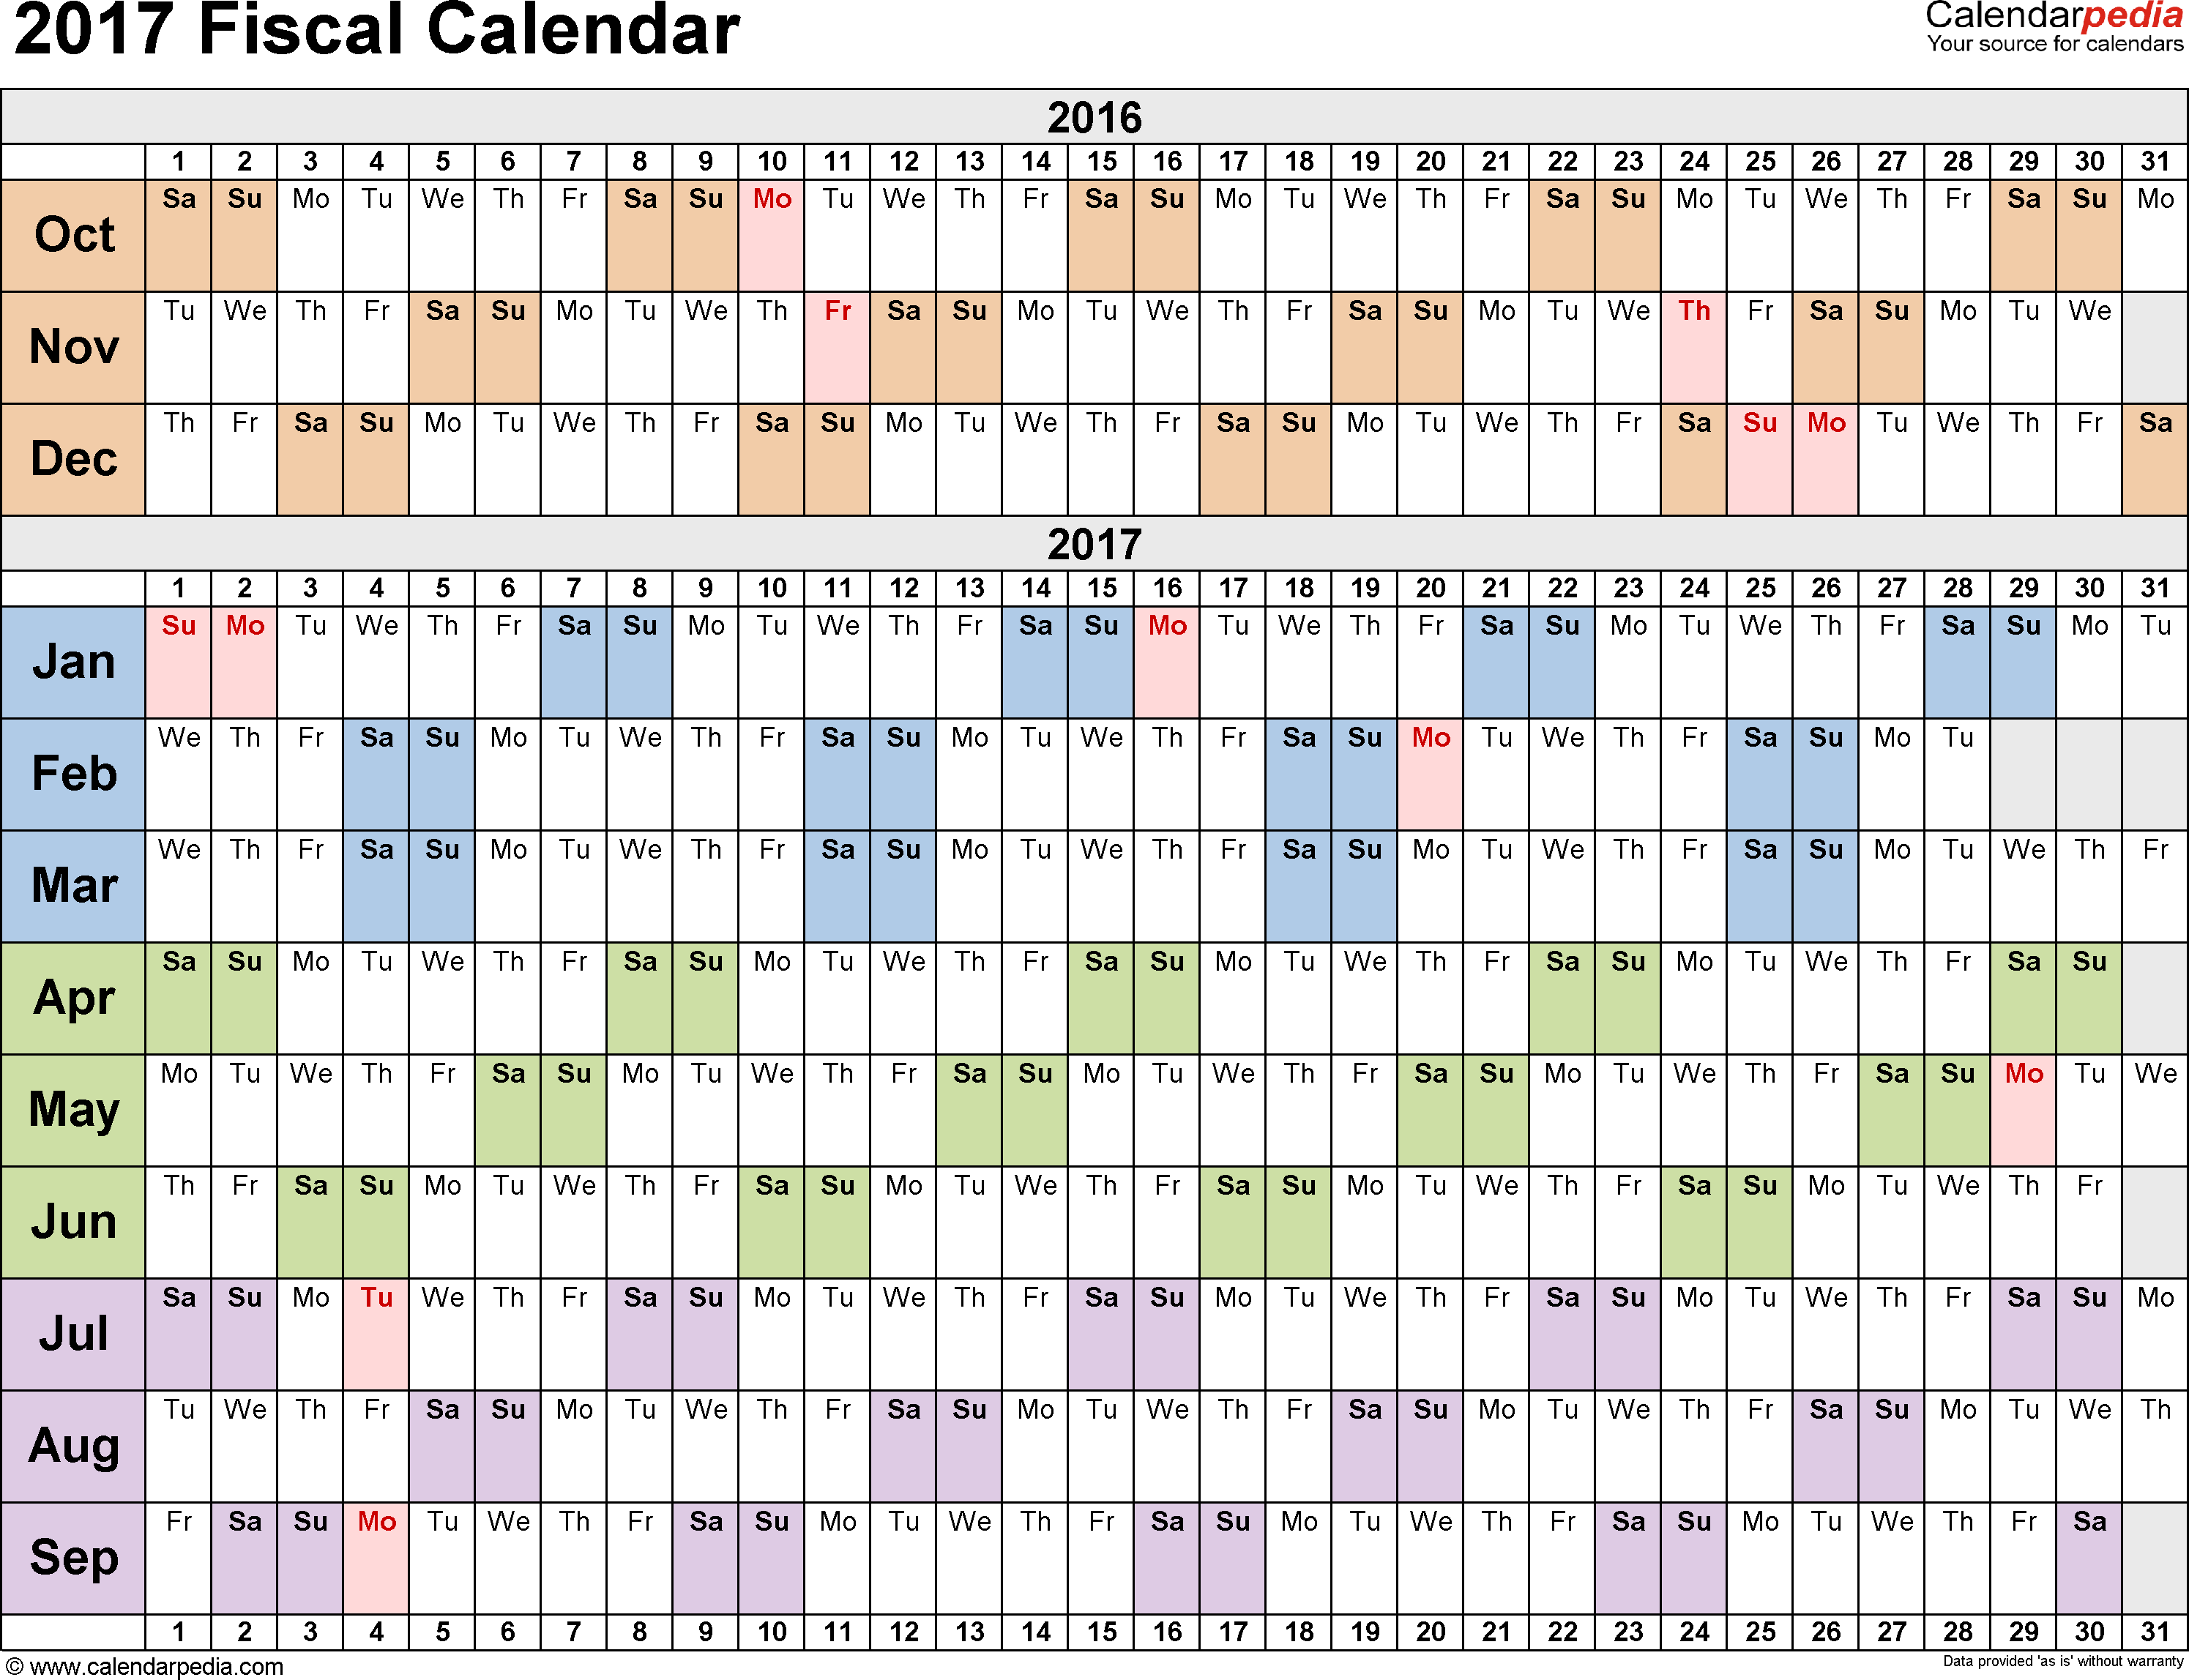 Template 2: Fiscal year calendar 2017 for Word, landscape orientation, days horizontally (linear), 1 page